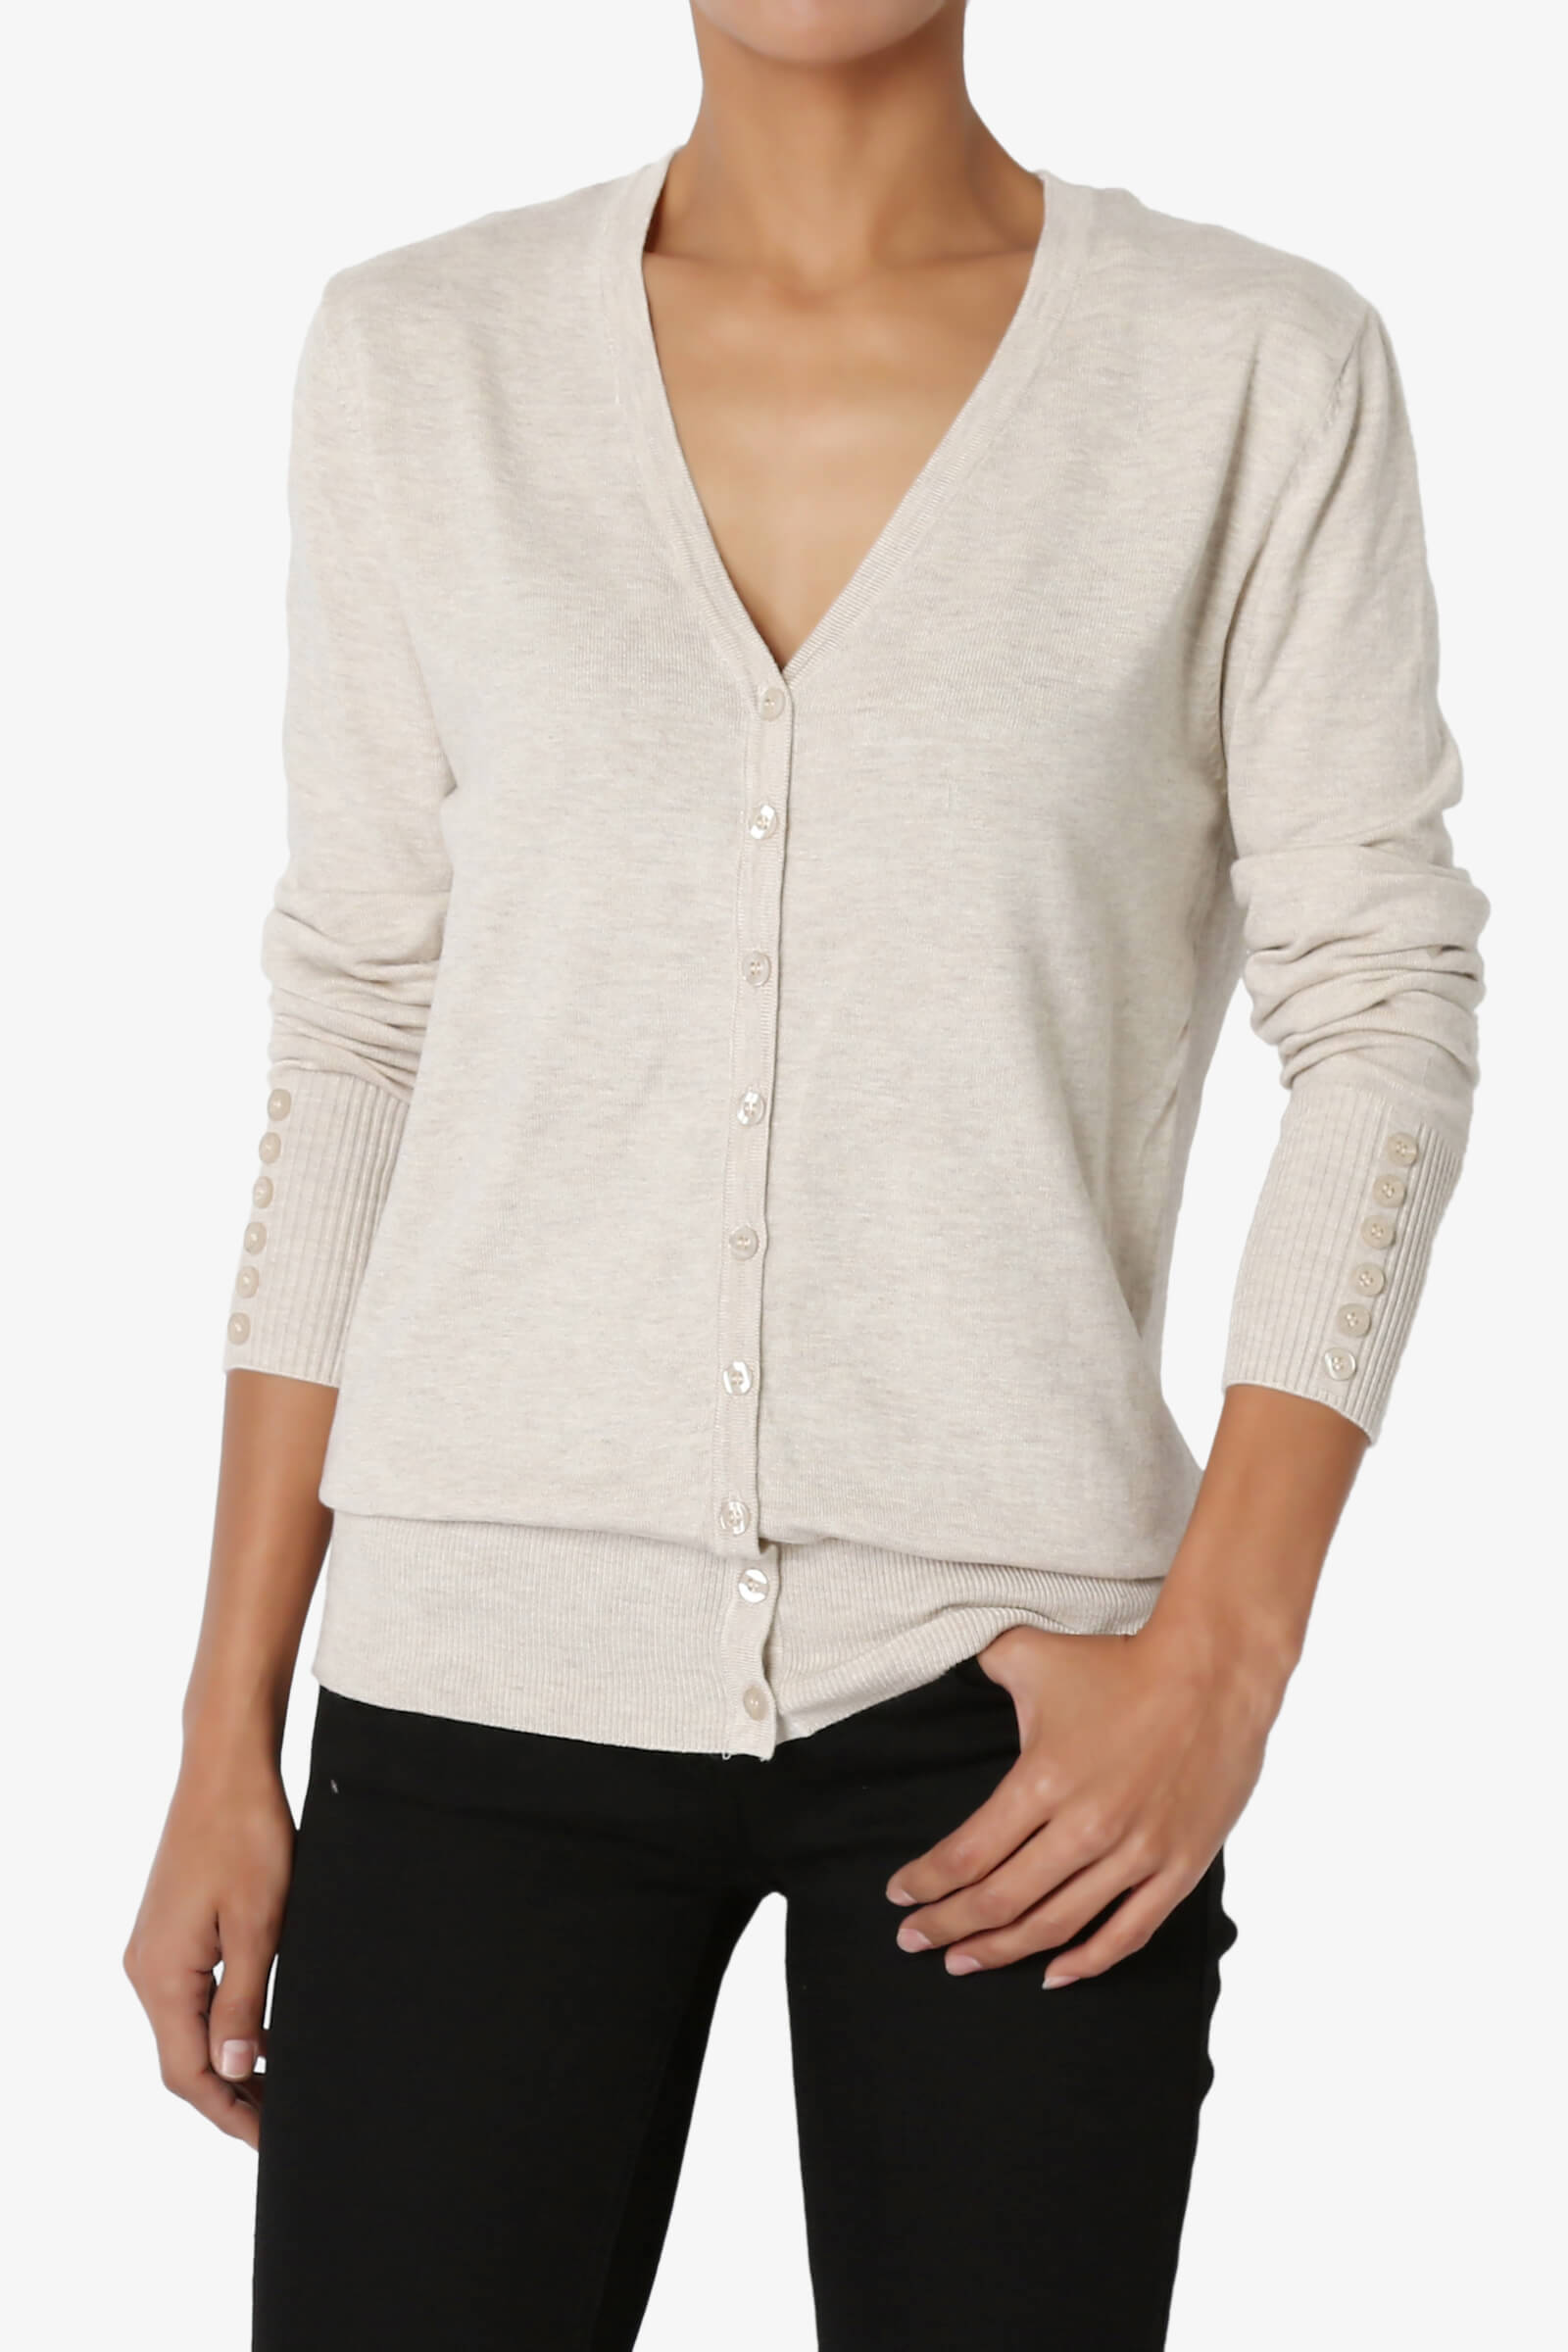 TheMogan Basic Button Down V-Neck Long Sleeve Lightweight Knit ...